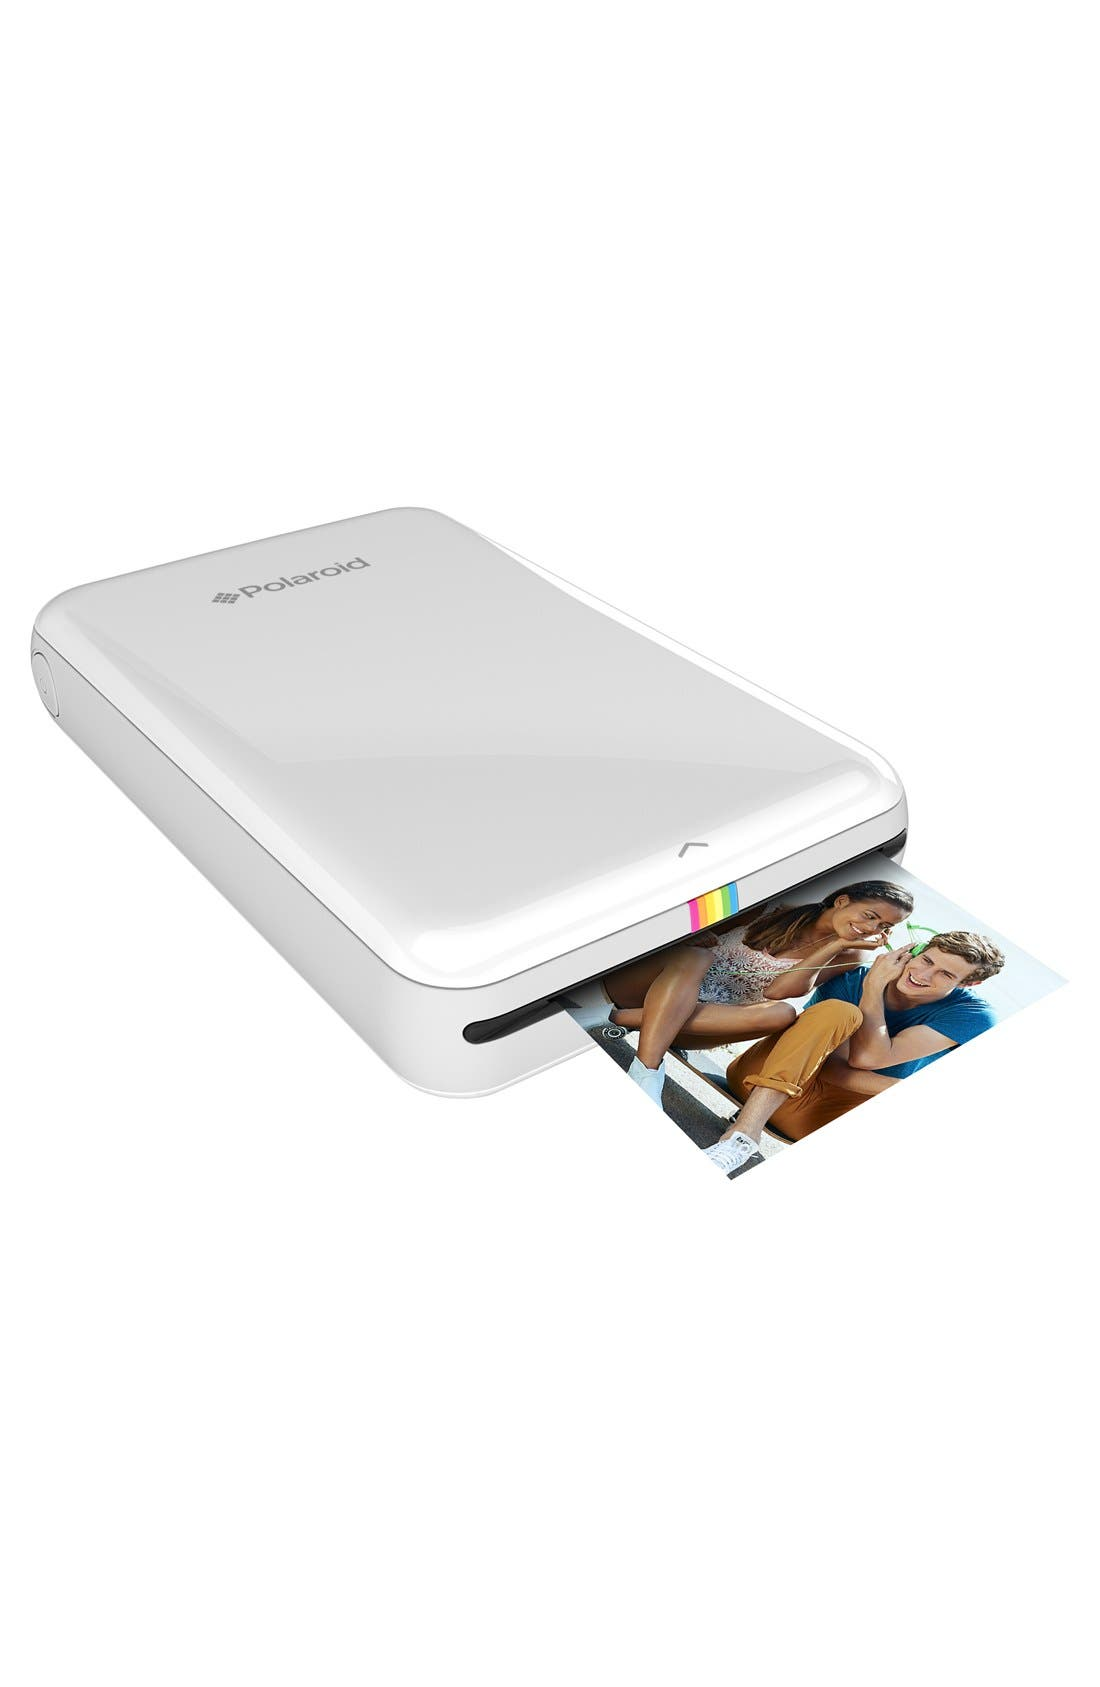 Alternate Image 1 Selected - Polaroid 'Zip' Mobile Instant Photo Printer